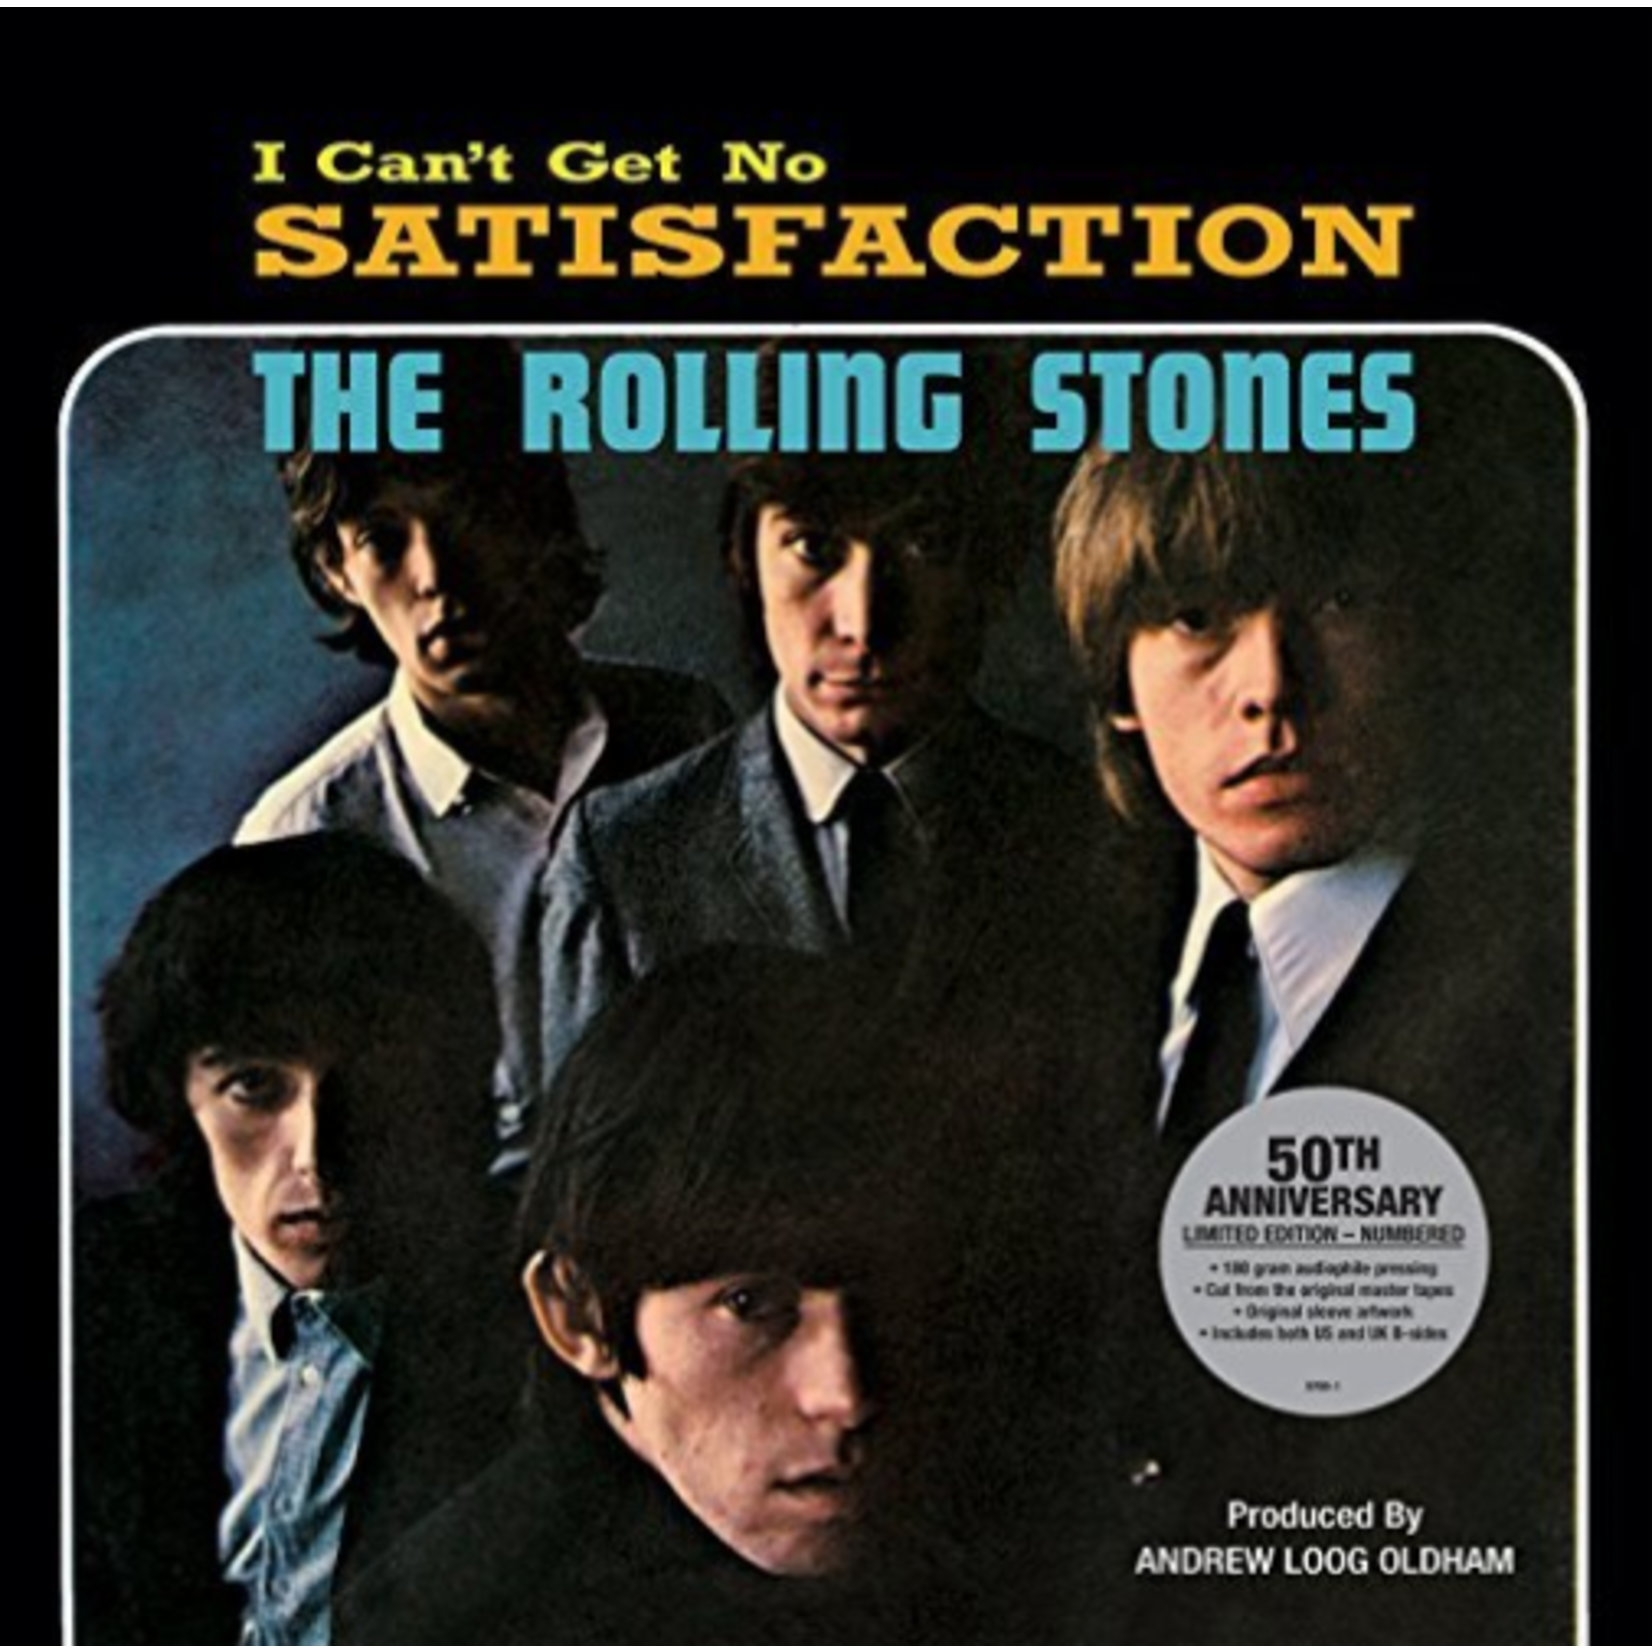 ROLLING STONES I CAN'T GET NO SATISFACTION  50TH ANNIVERSARY LTD EDITION - NUMBERED